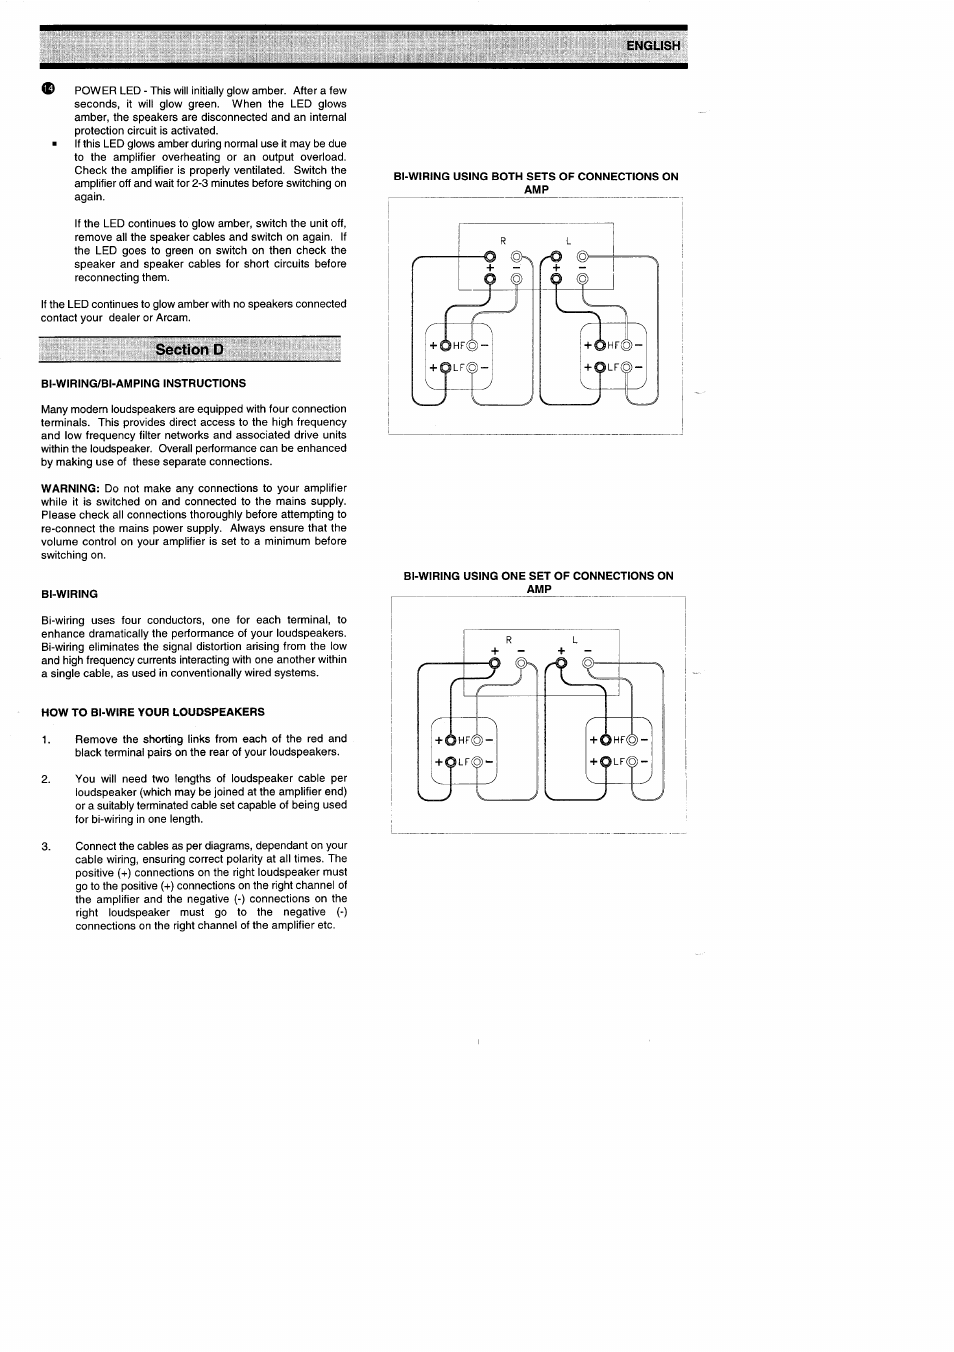 Section D Bi Wiring Amping Instructions Using Both Amp Diagram Sets Of Connections On Arcam Amplifiers Alpha 9 9p User Manual Page 8 12